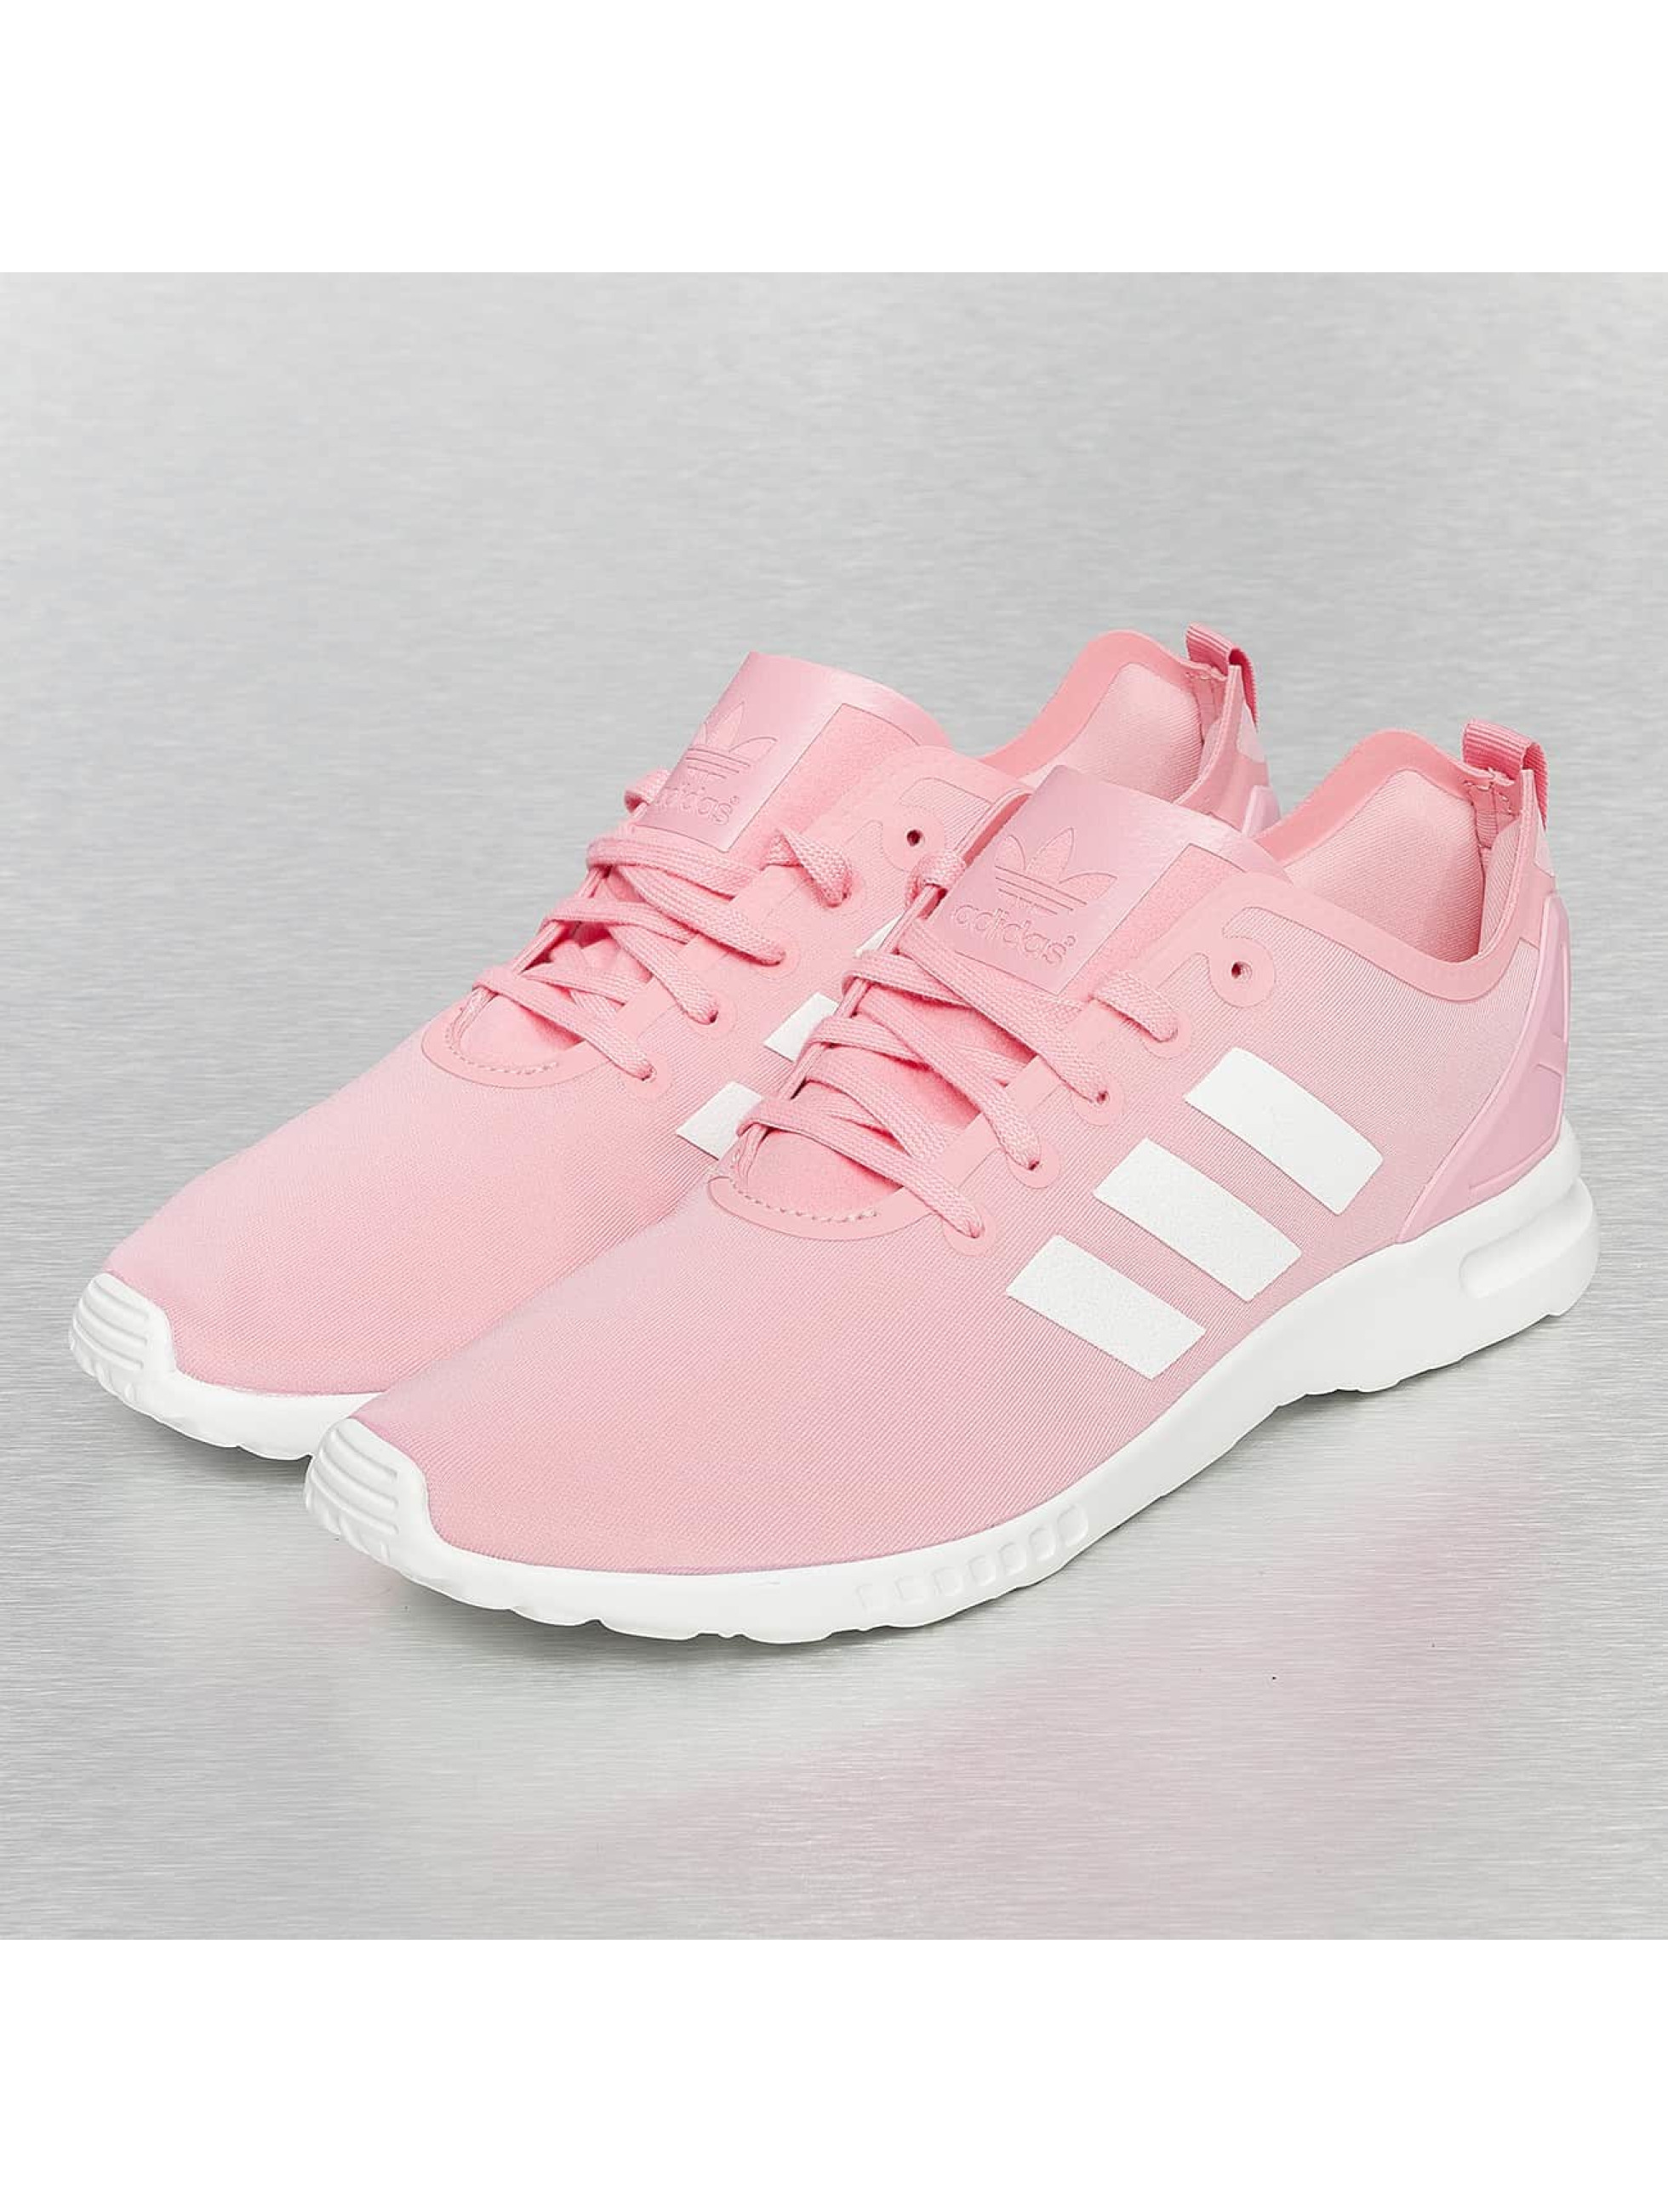 adidas schuhe sneaker zx flux in pink 175059. Black Bedroom Furniture Sets. Home Design Ideas